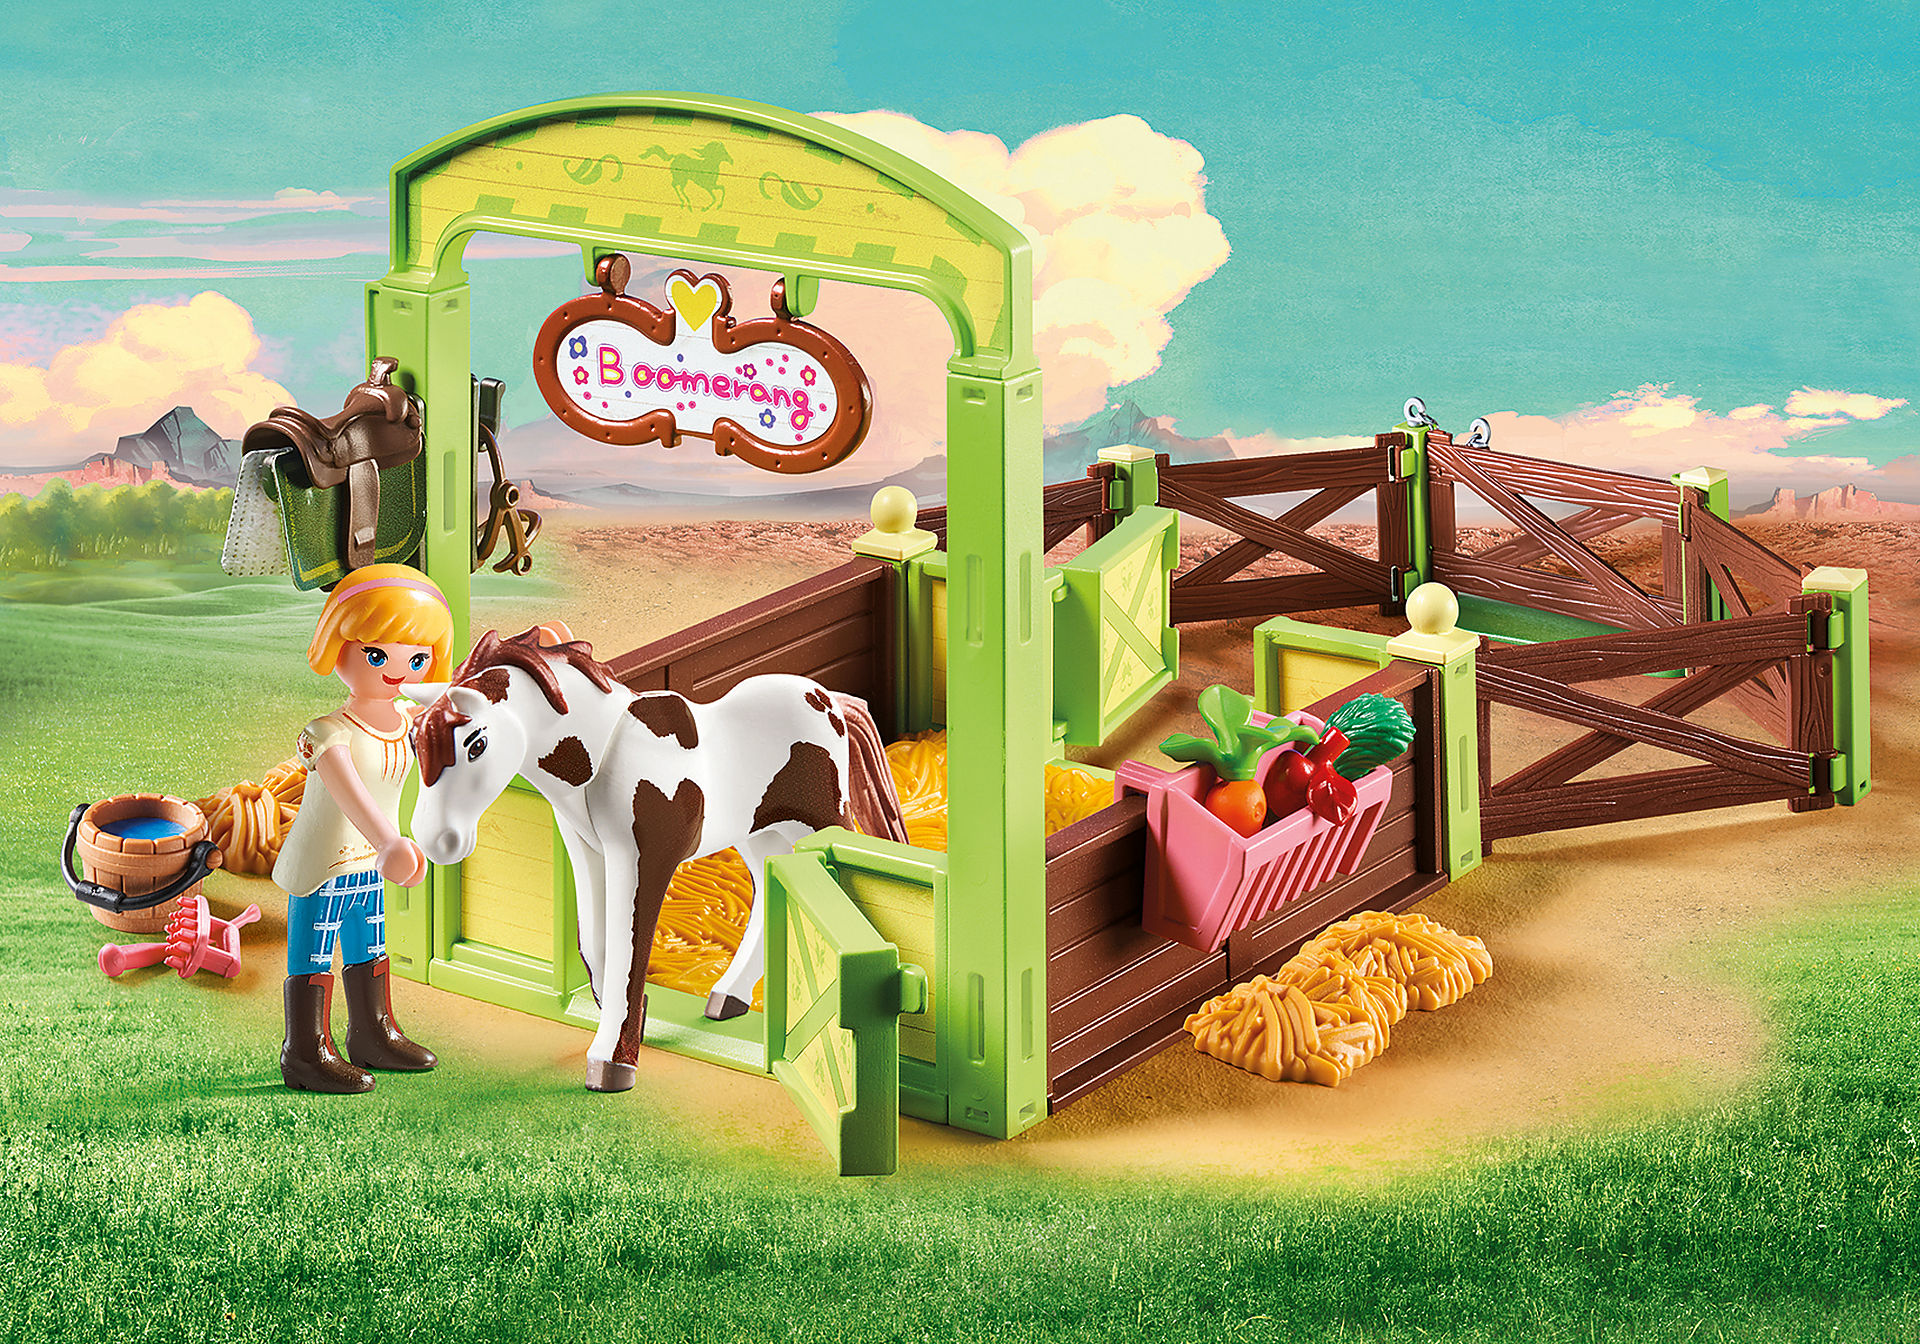 9480 Abigail & Boomerang with Horse Stall zoom image1